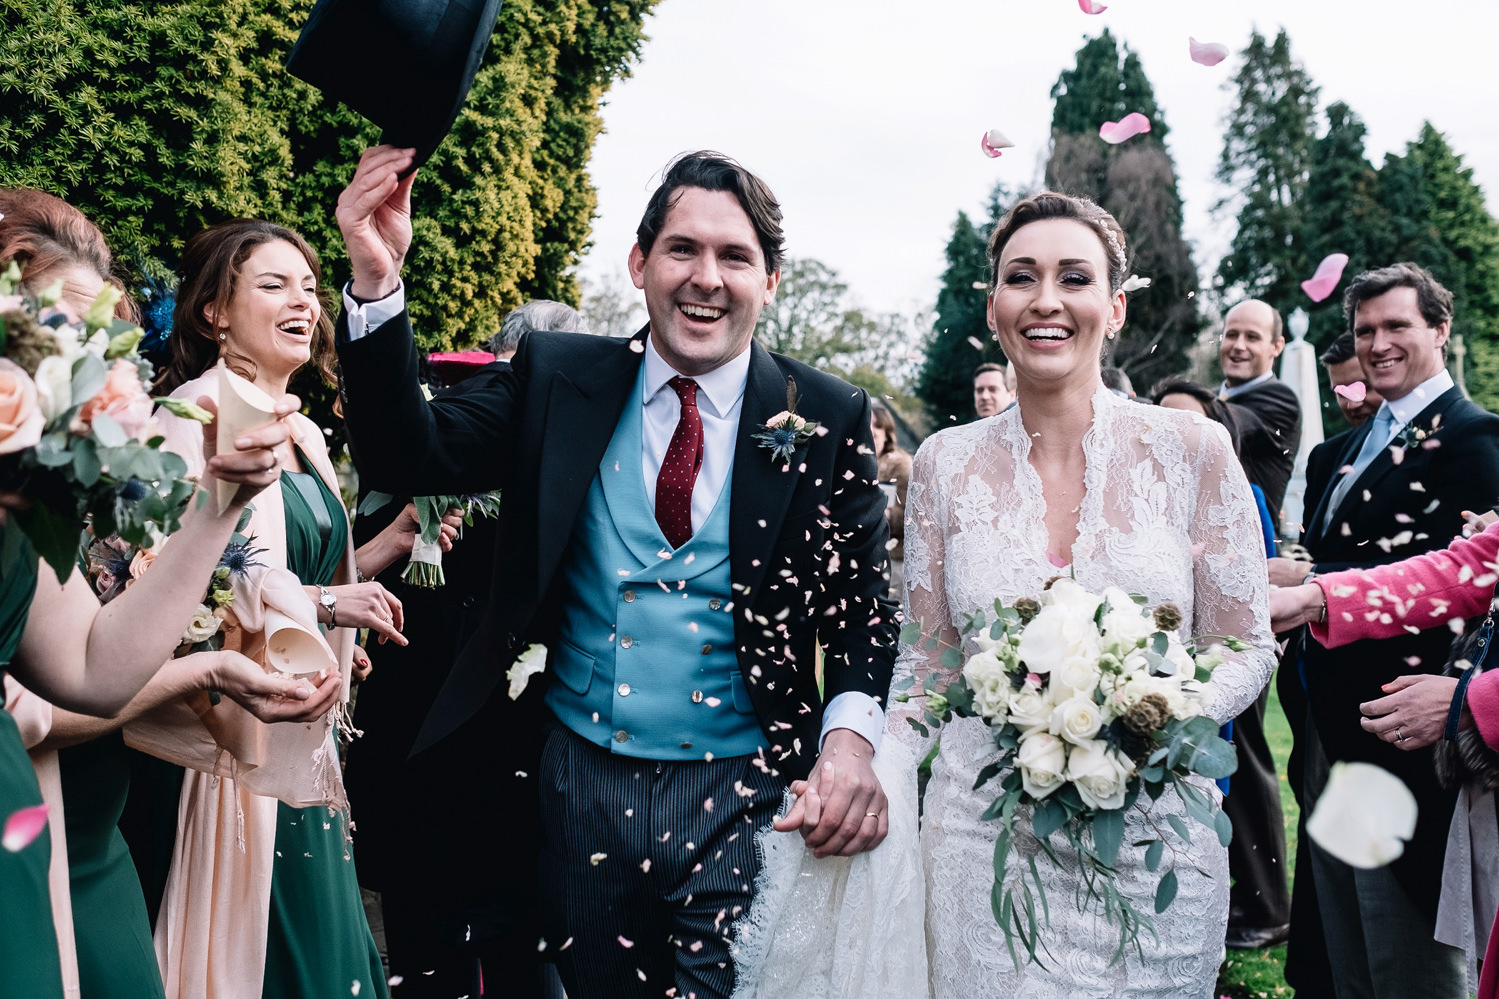 Groom takes off top hat during confetti walk.